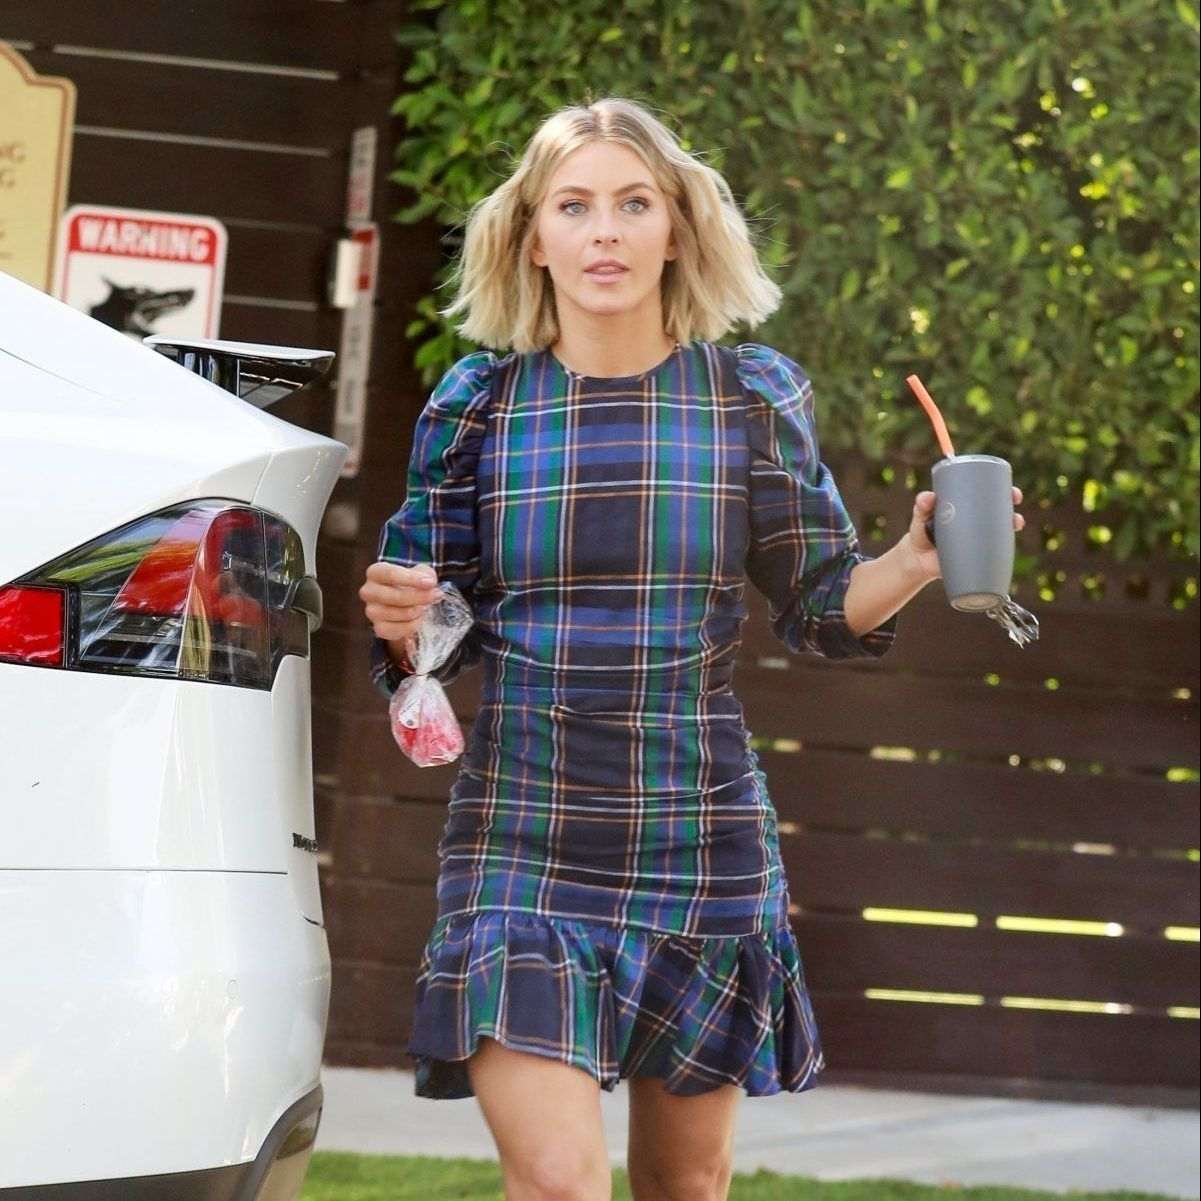 Julianne Hough Casual / Street Style in West Hollywood #juliannehoughstyle Julianne Hough Casual / Street Style in West Hollywood #juliannehoughstyle Julianne Hough Casual / Street Style in West Hollywood #juliannehoughstyle Julianne Hough Casual / Street Style in West Hollywood #juliannehoughstyle